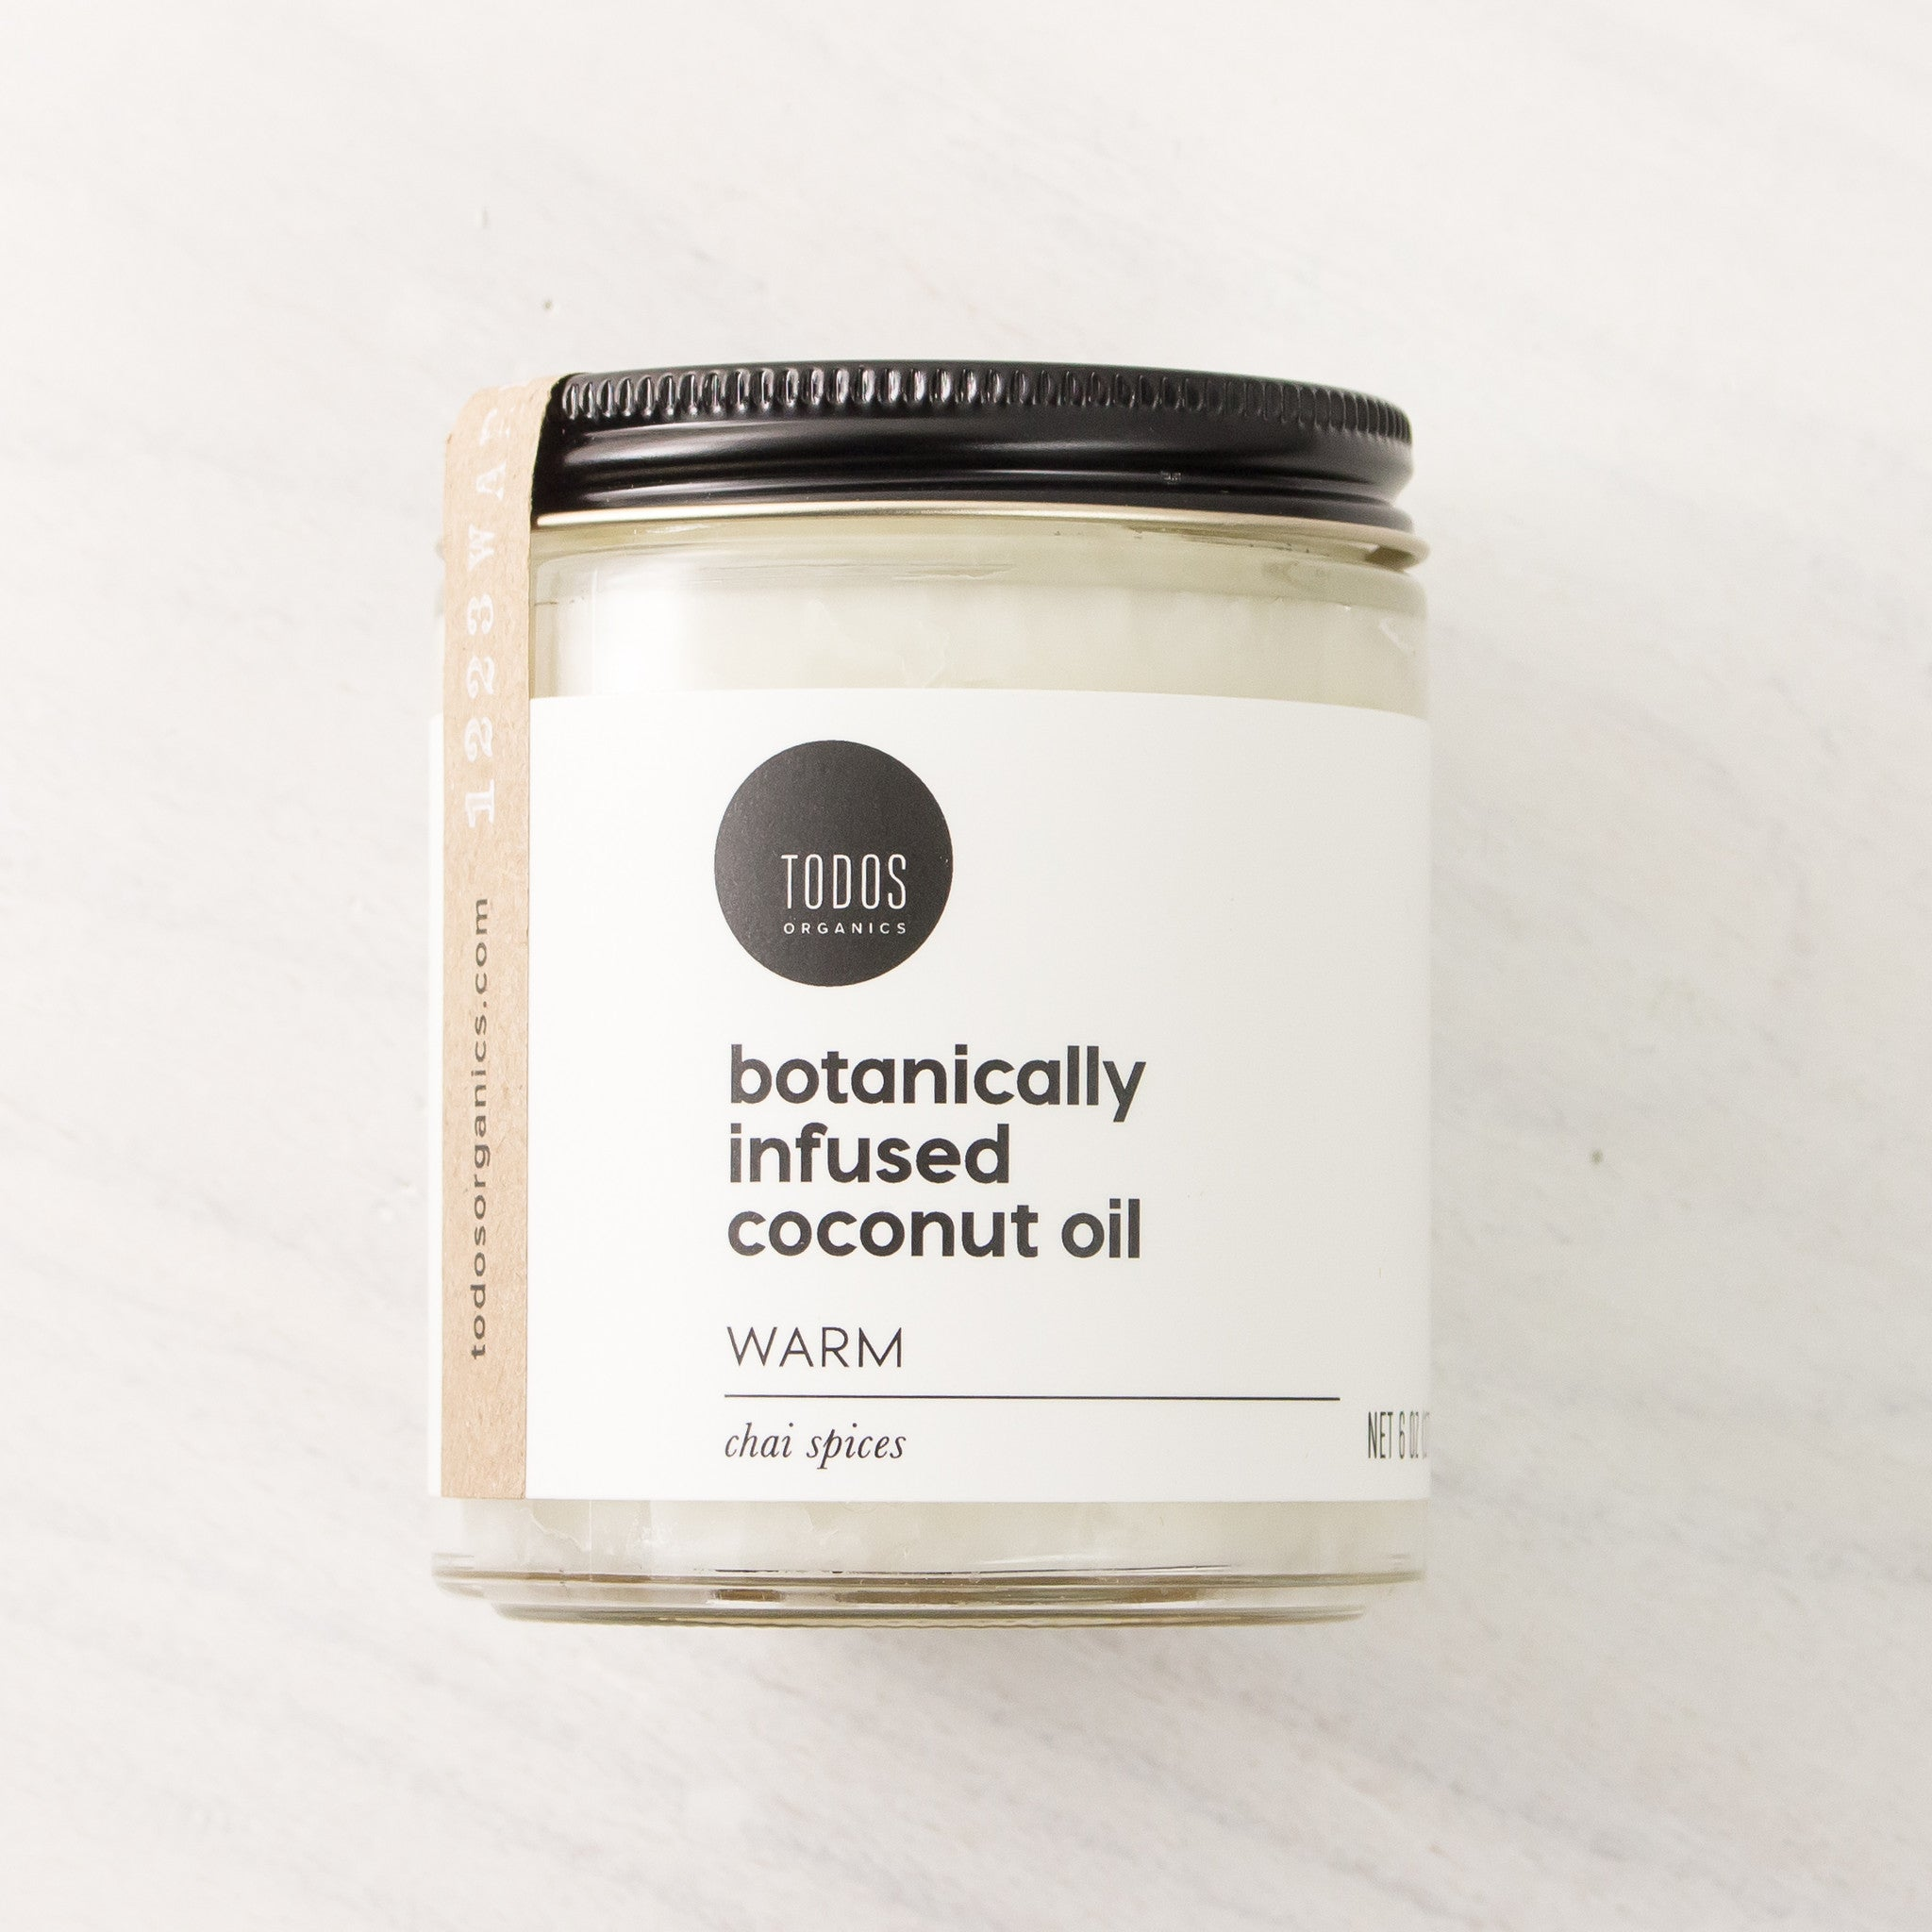 WARM Organic Herbal Infused Coconut Oil